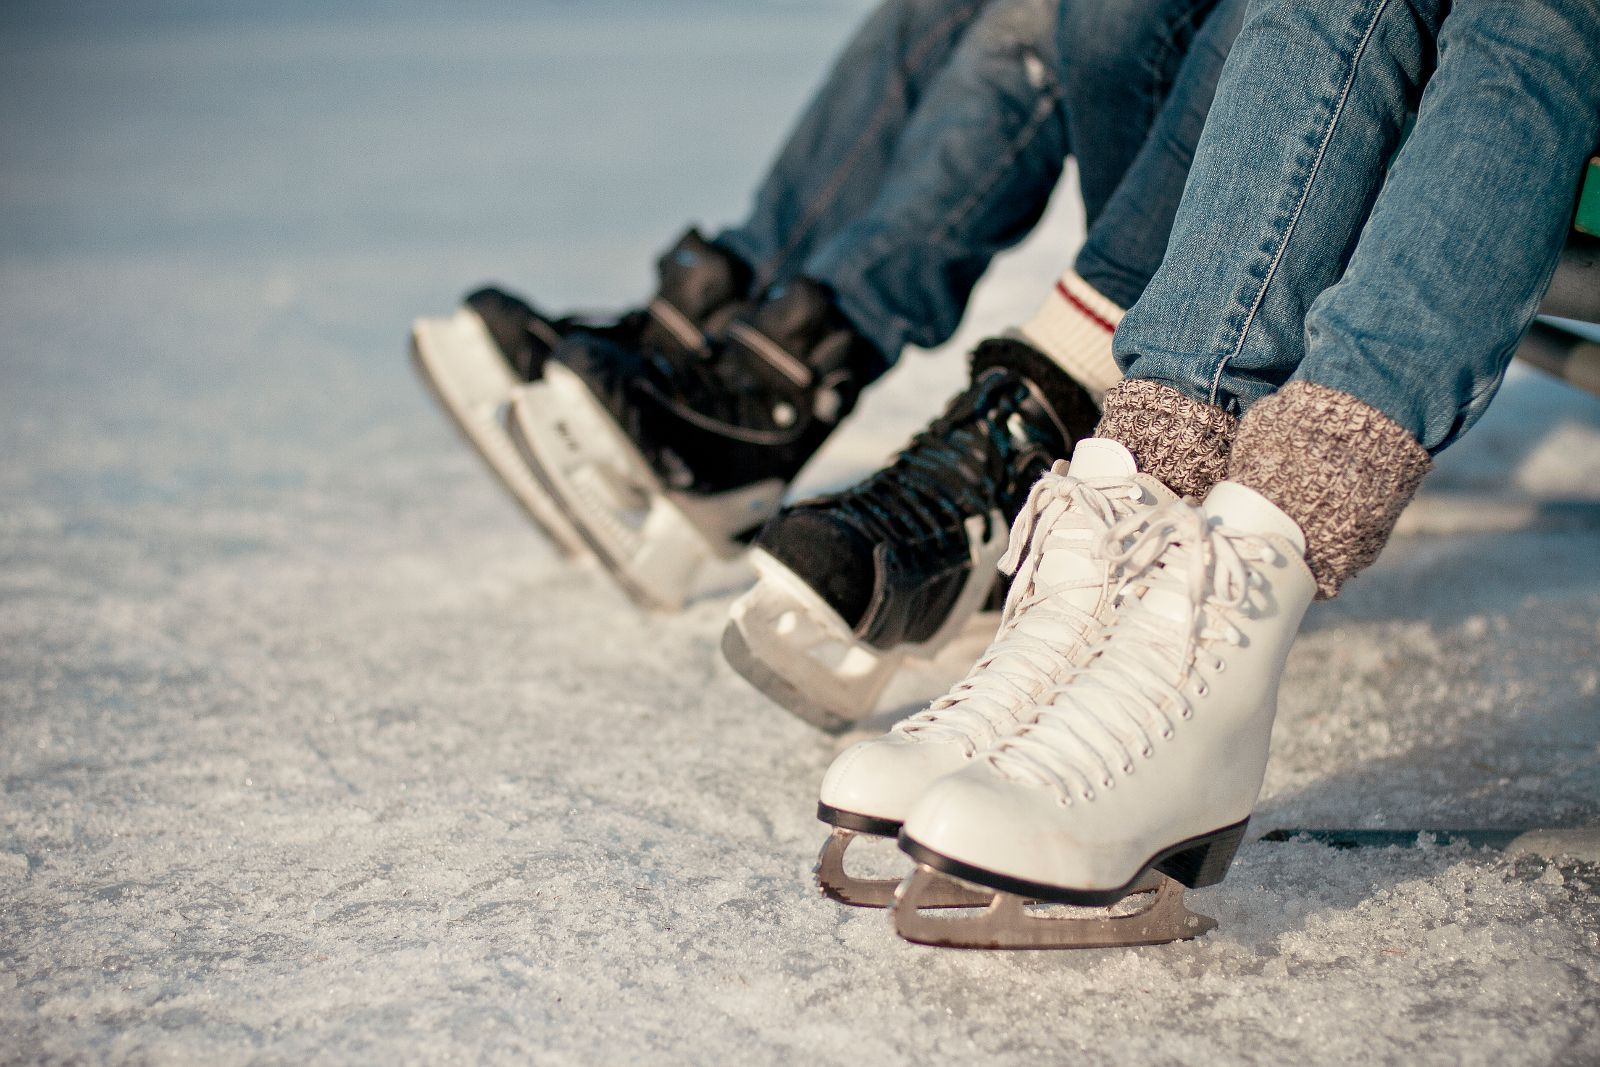 St Paul Park Auto >> Places to Ice Skate in Minneapolis and St. Paul